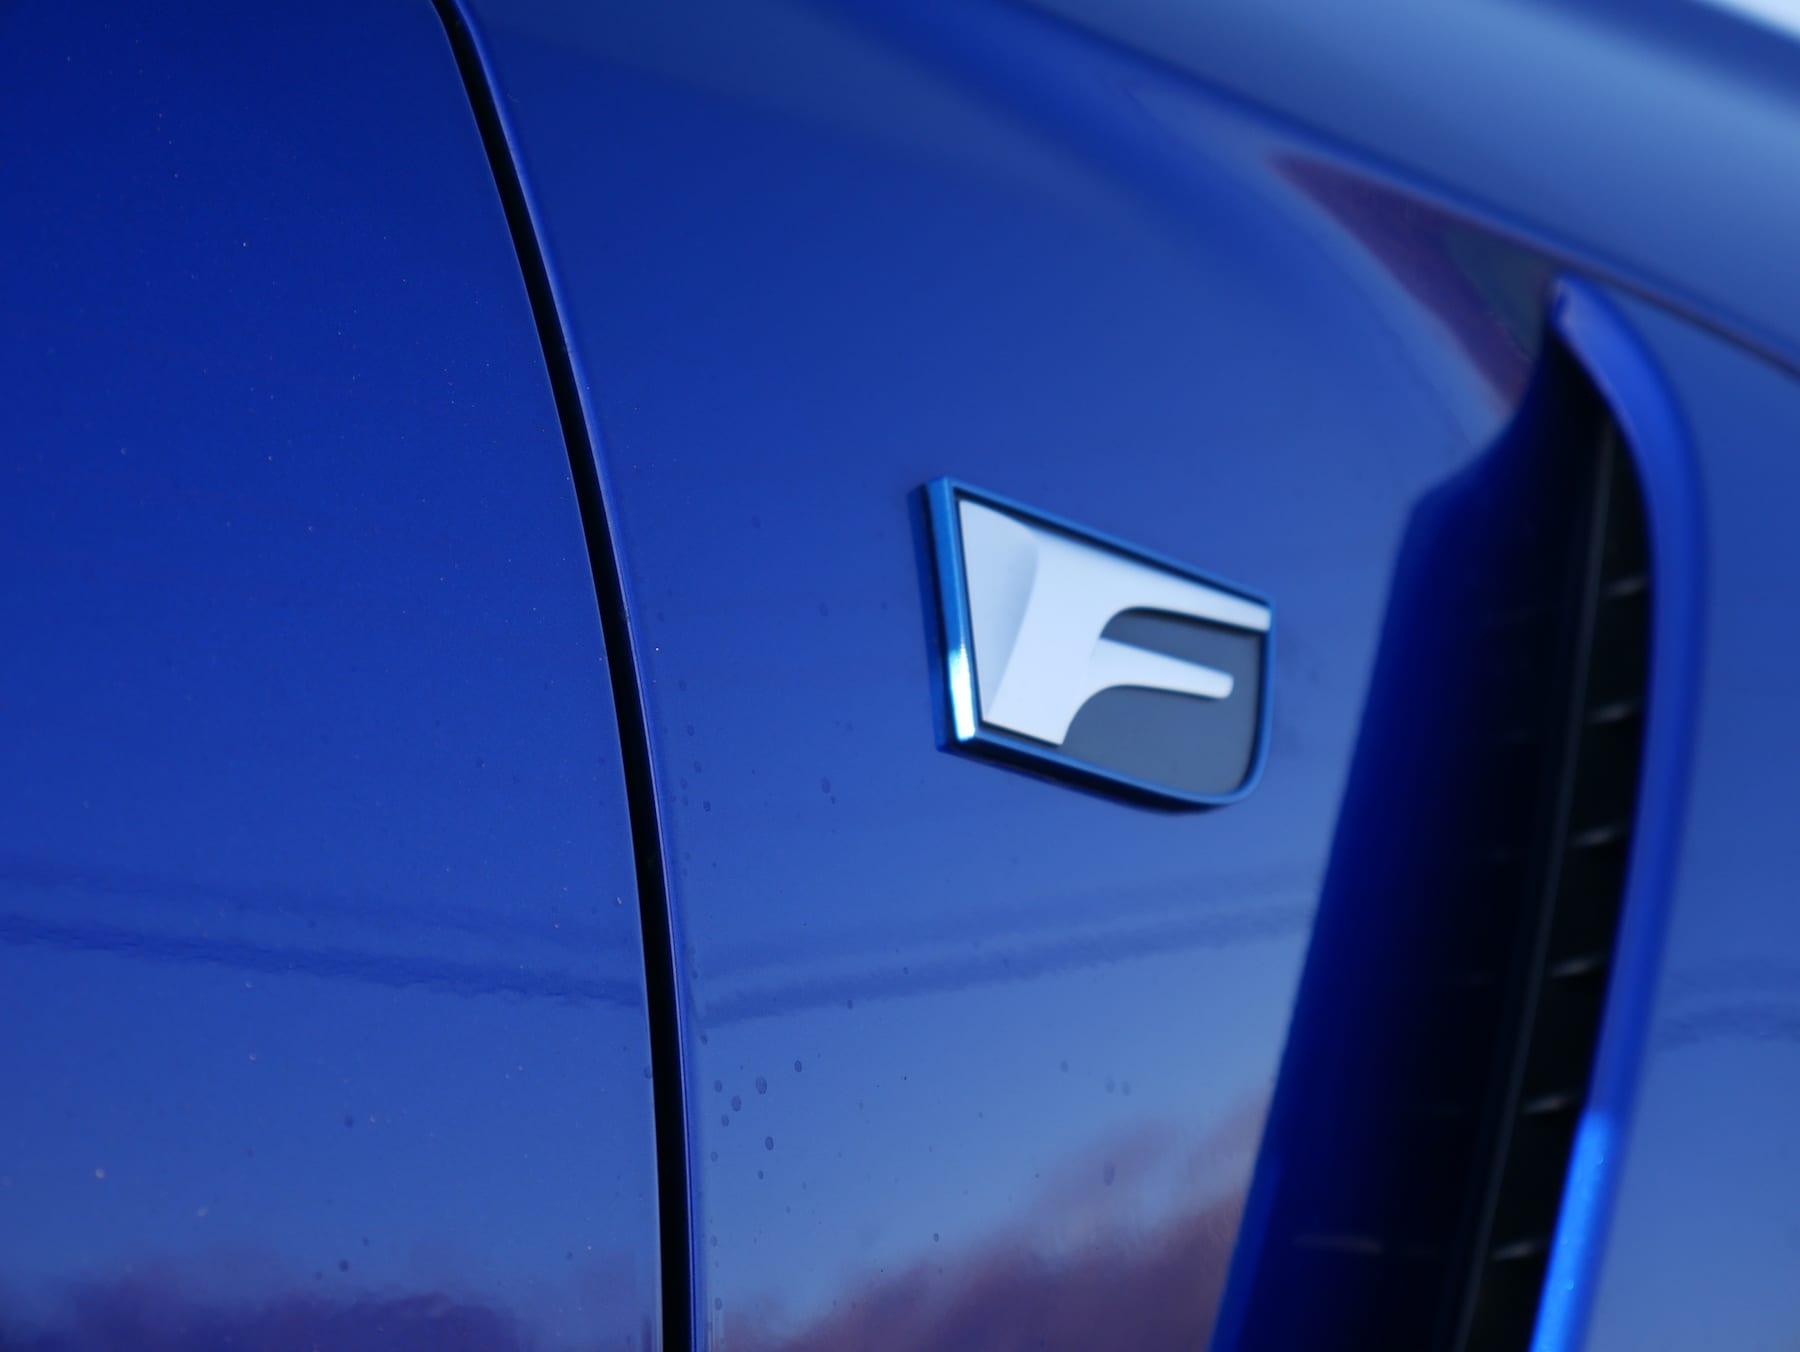 2019 Lexus RC F badge